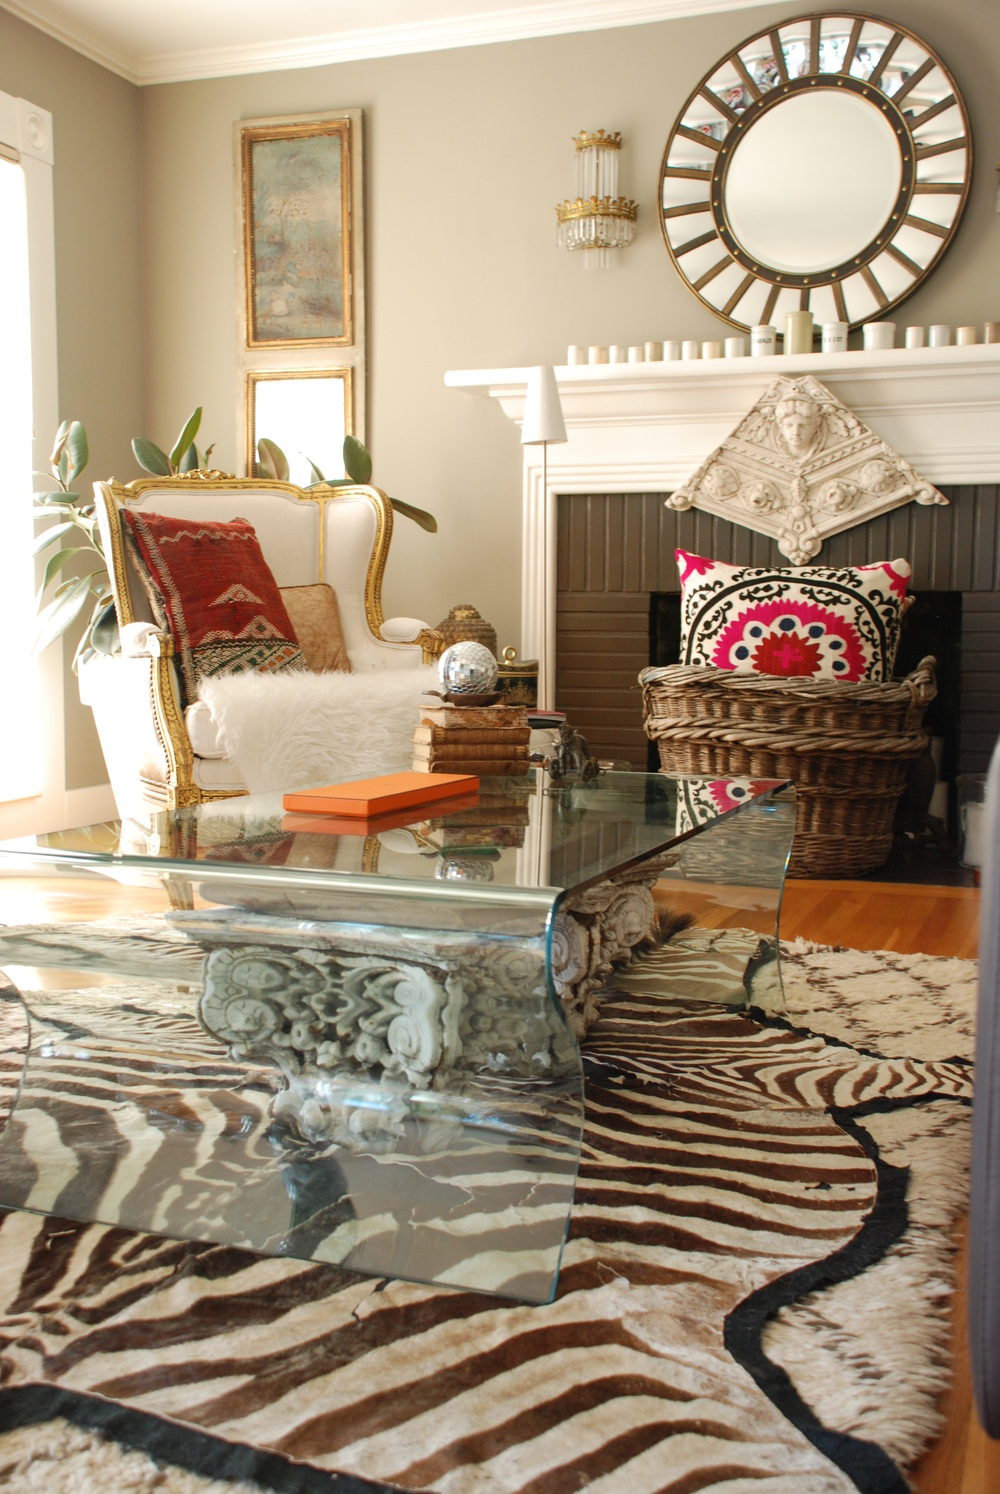 Architectural capitals are visible beneath the DWR glass coffee table.